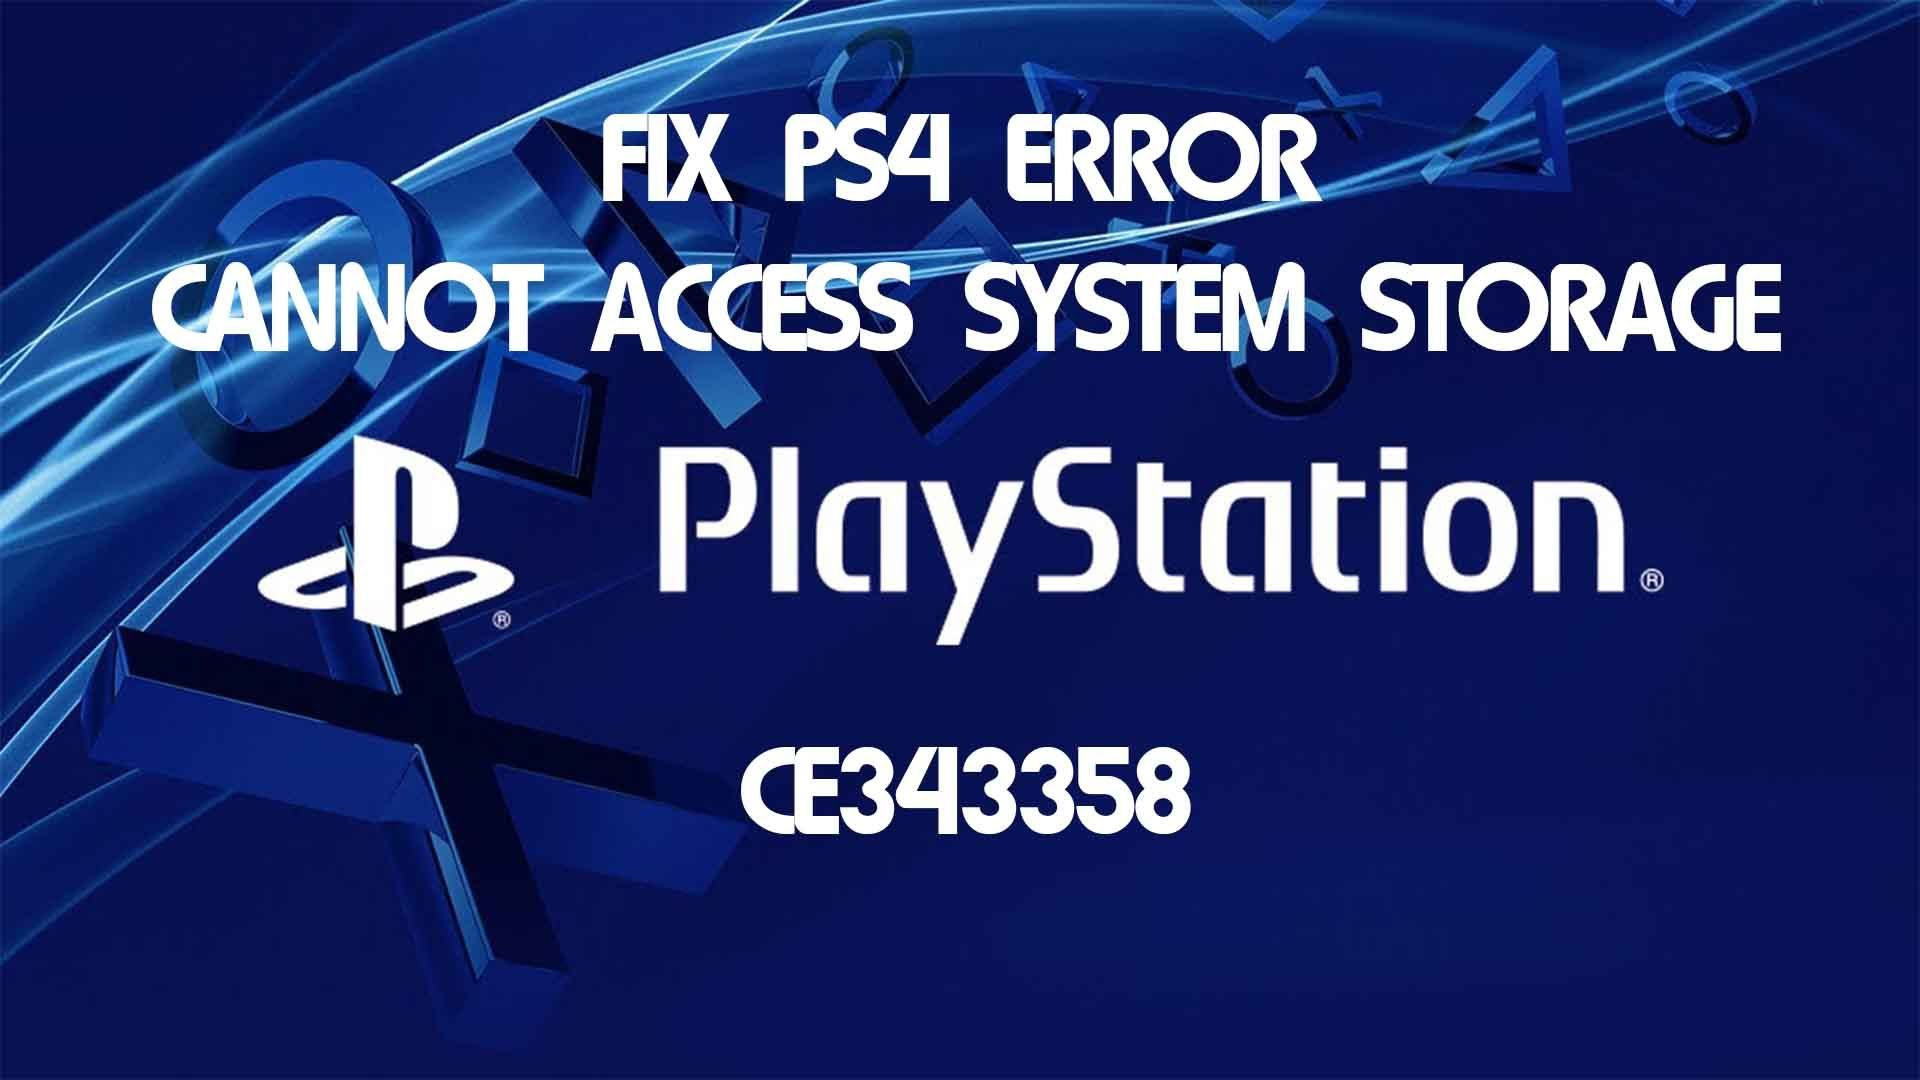 In This Video We Show You A Possible Fix For The Ce 34335 8 Error The Sony Playstation 4 Has Been Having Since Launch Ce Playstation Sony Playstation Tutorial